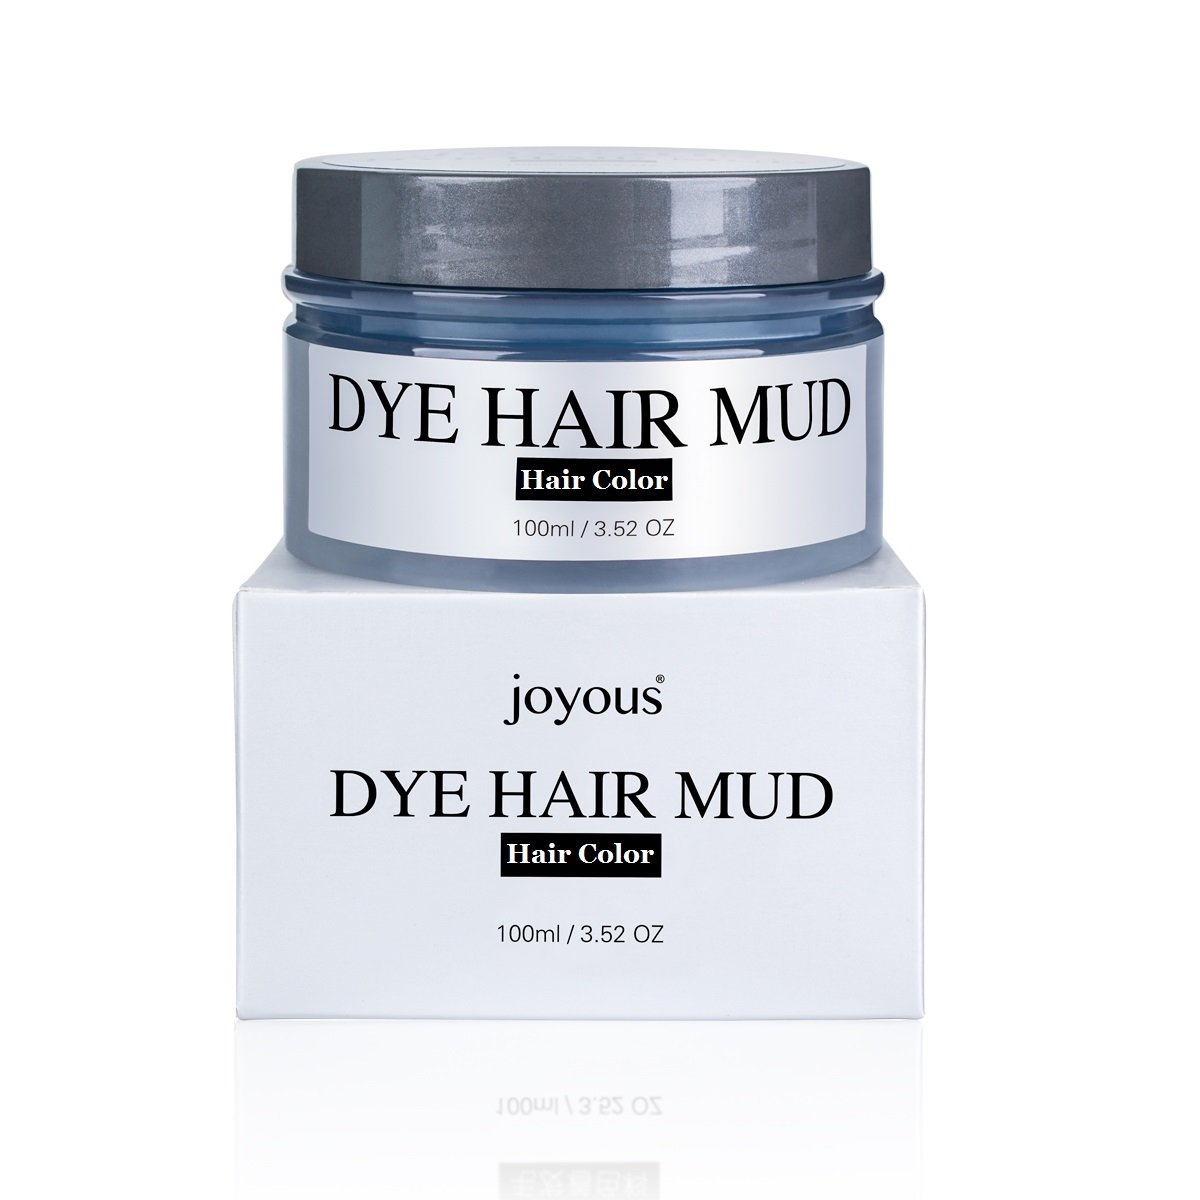 Professional Temporary Dye Hair Mud Highlights Instant Hair Color